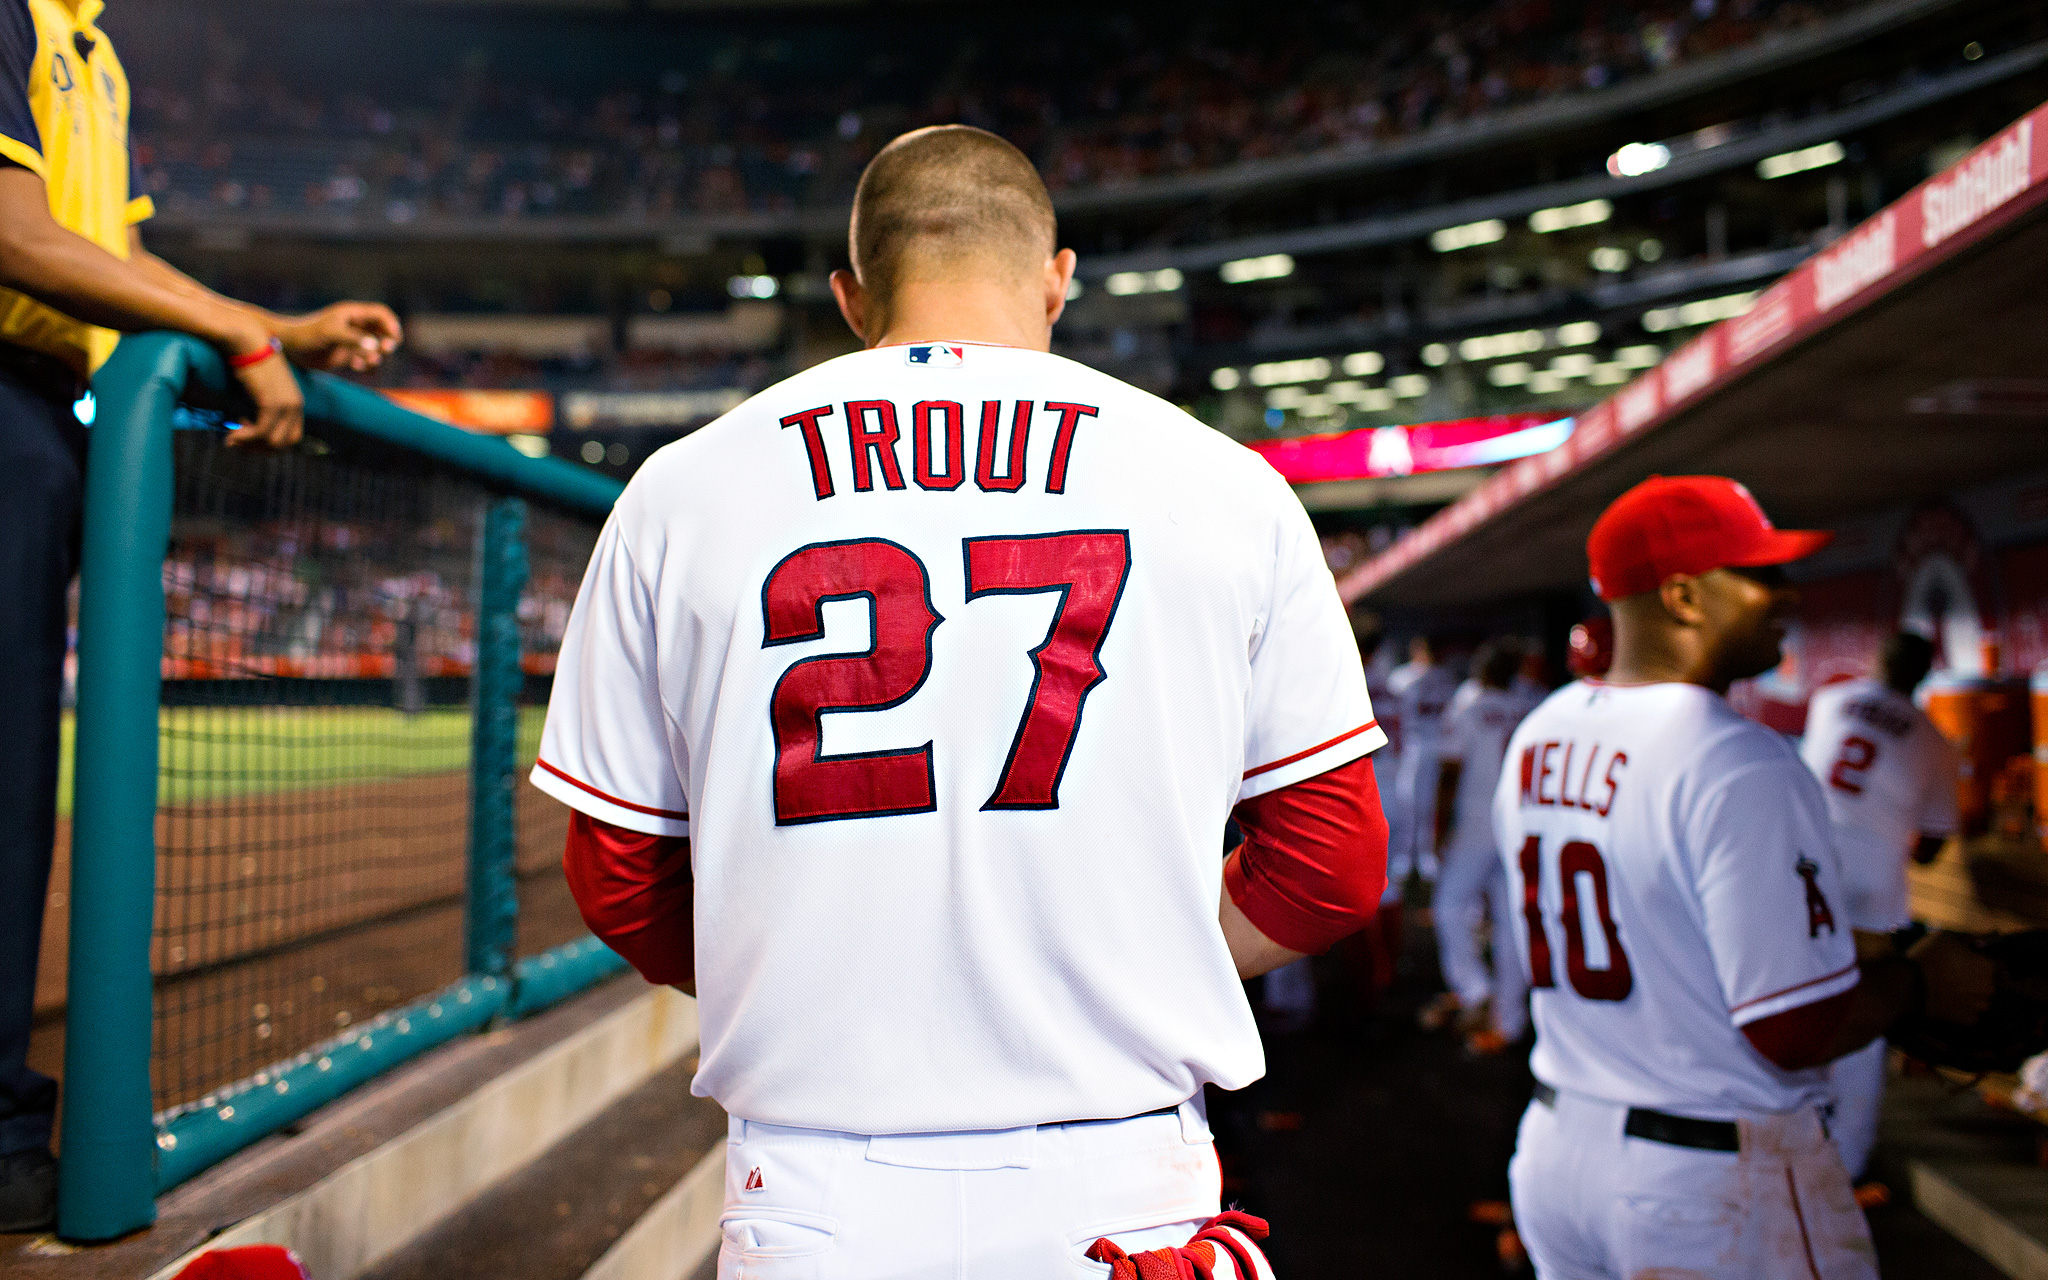 Mike Trout, Age 21